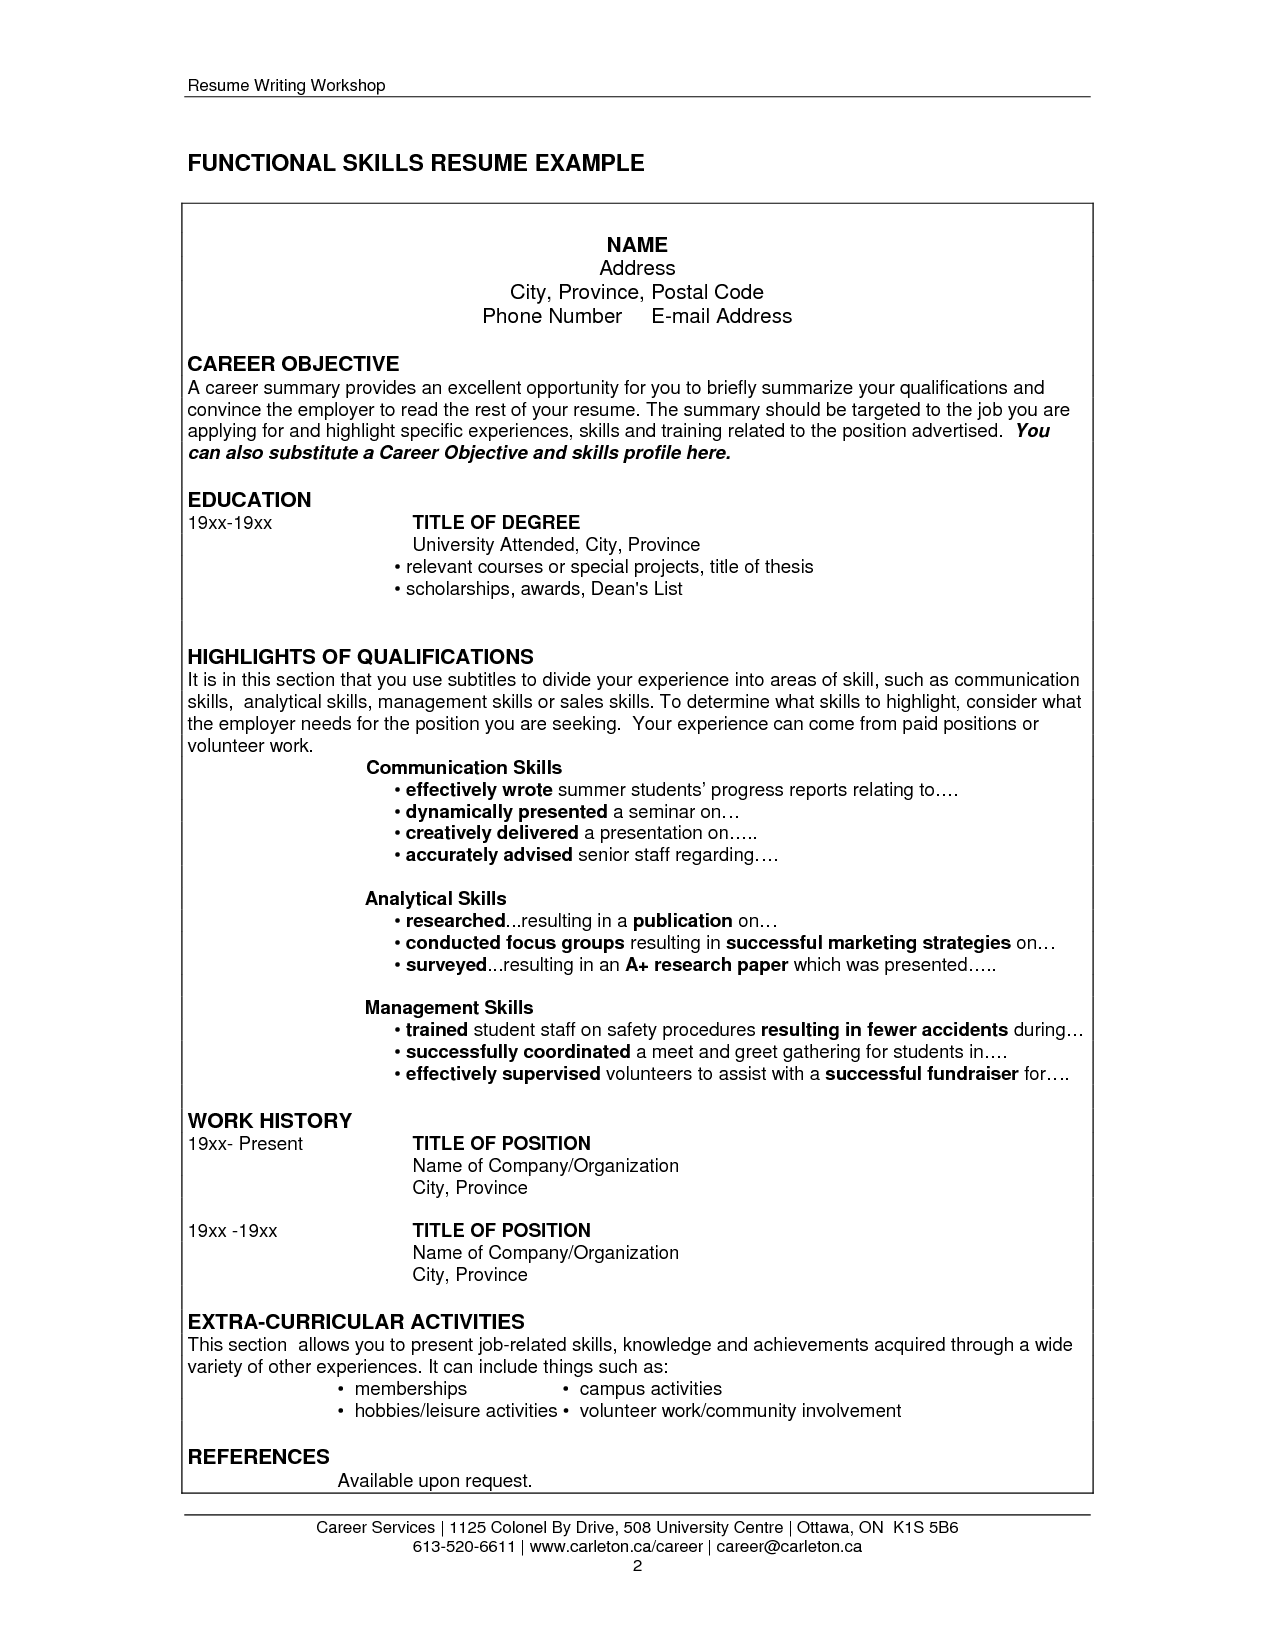 Superior Image Result For Skills Resume Format  Sample Skills Based Resume